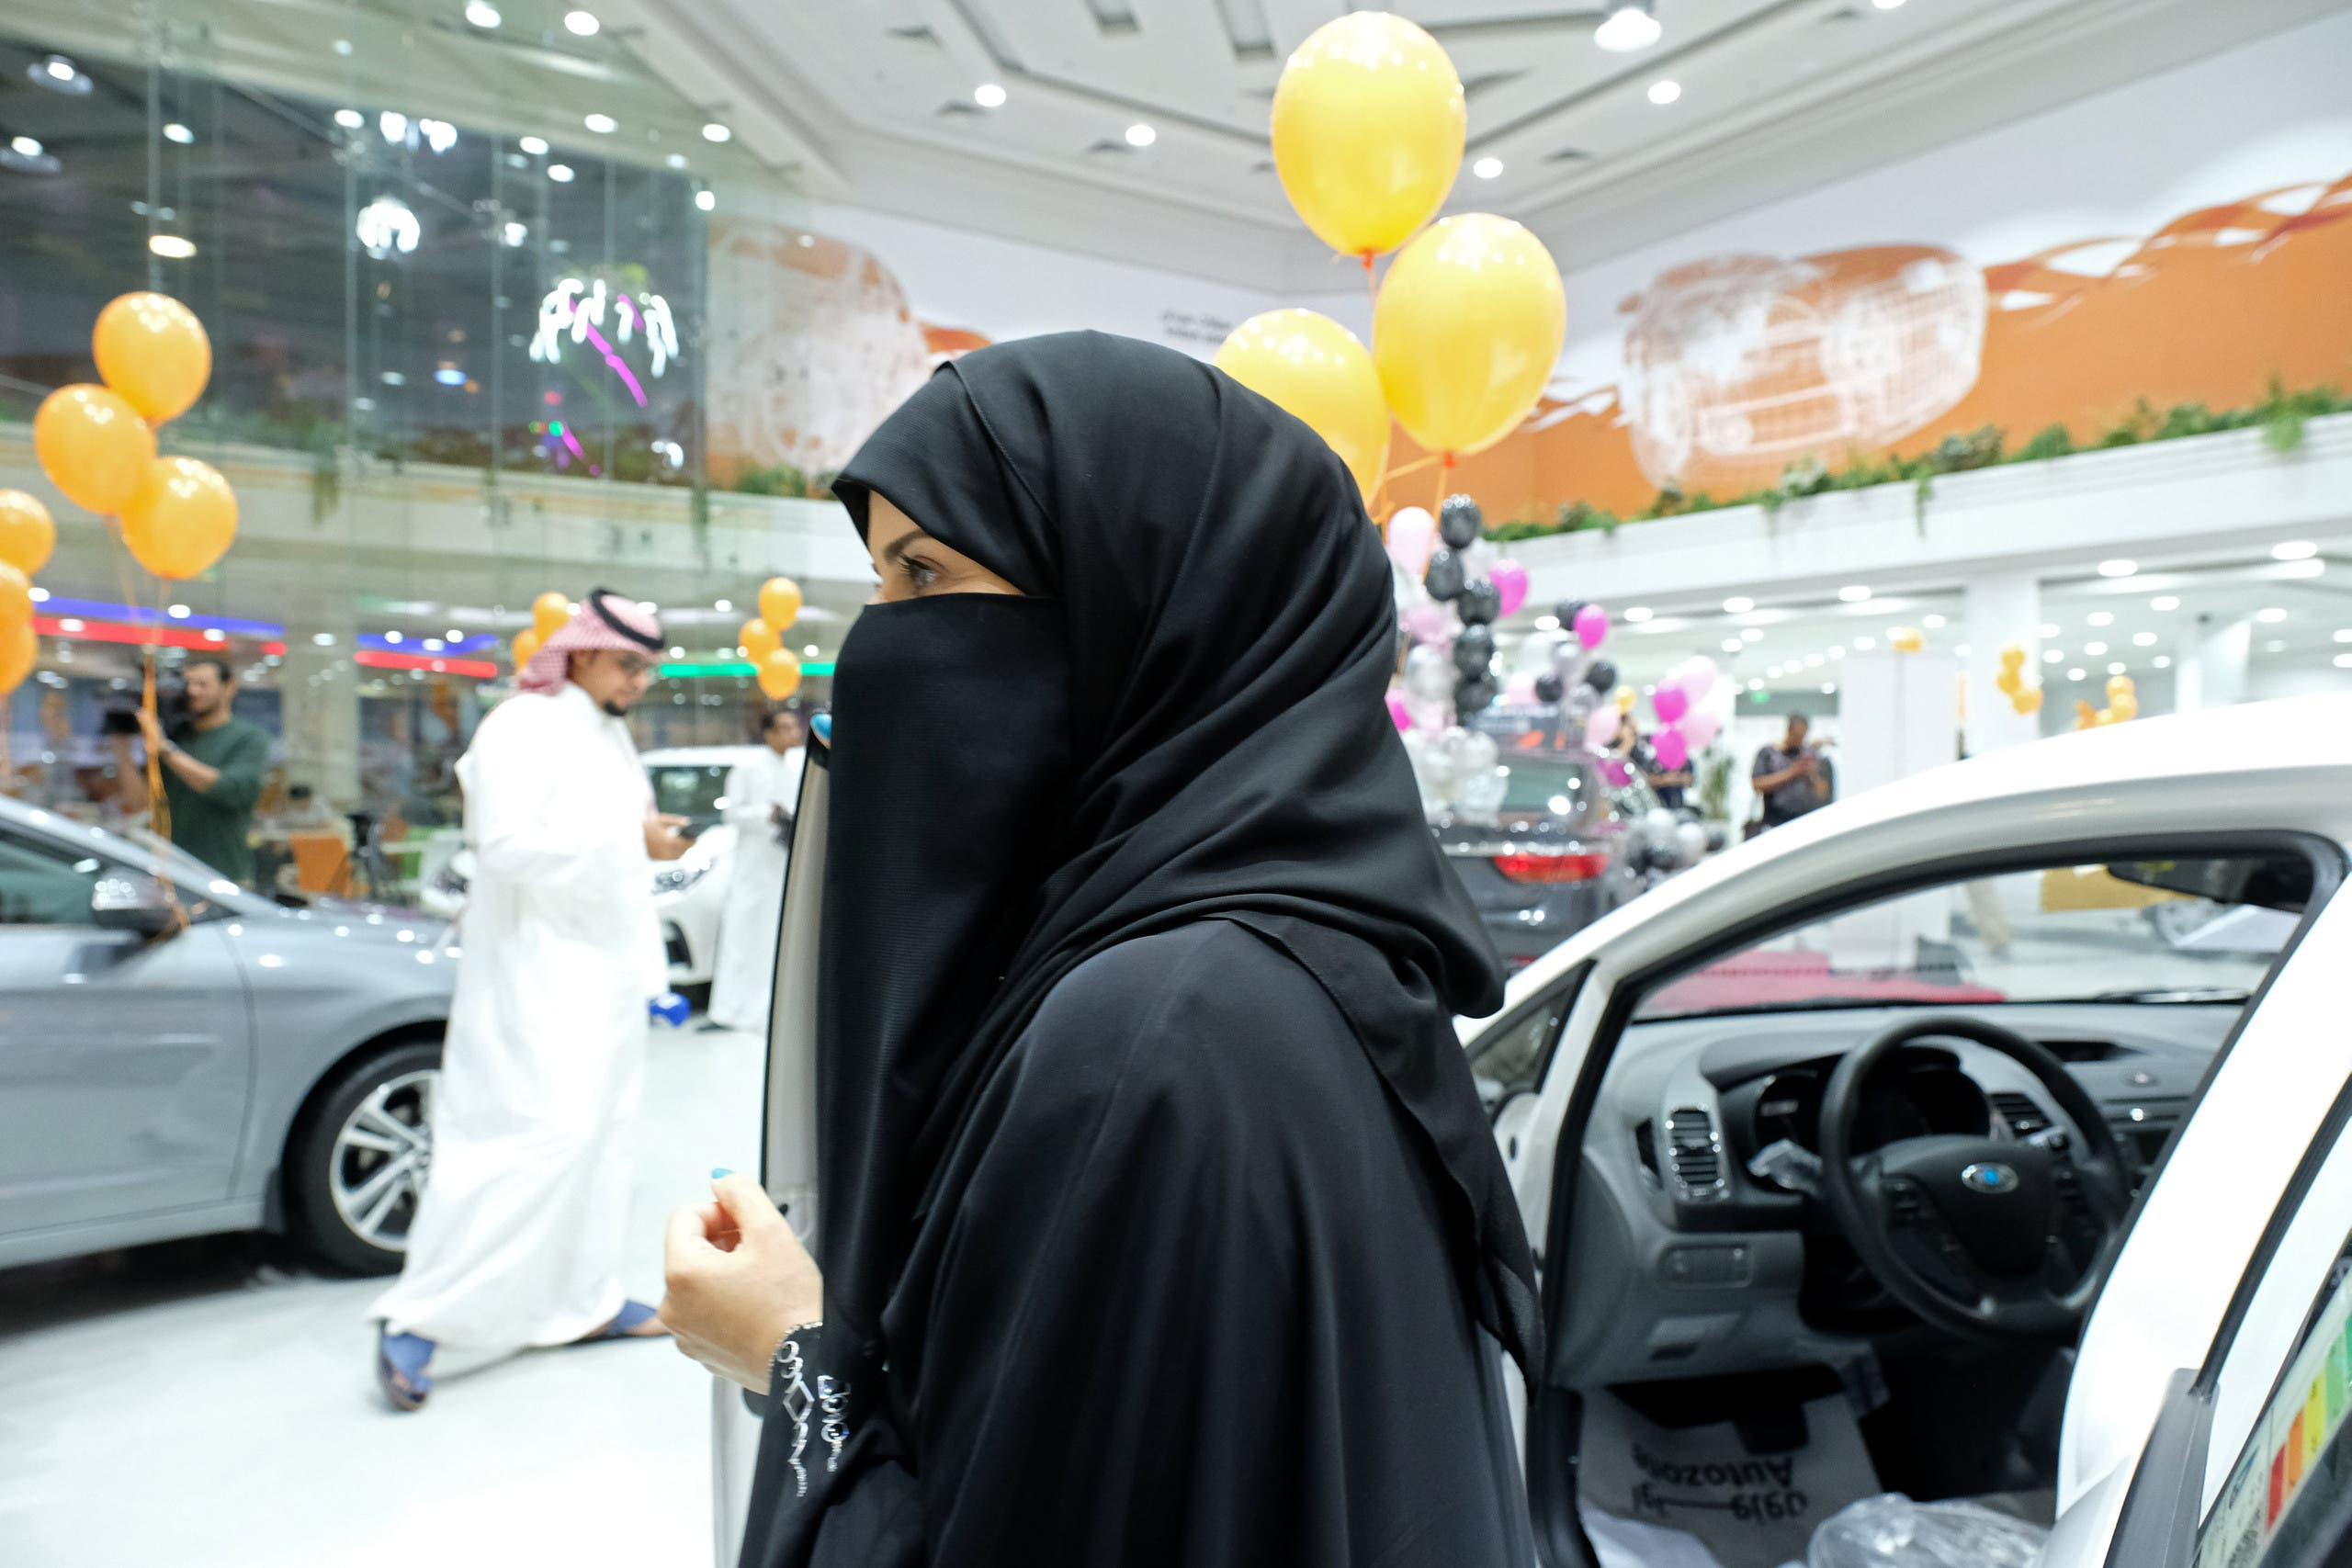 The exhibition focused on fuel-efficient cars and provided a team of saleswomen to help their new customer base. (Reuters)